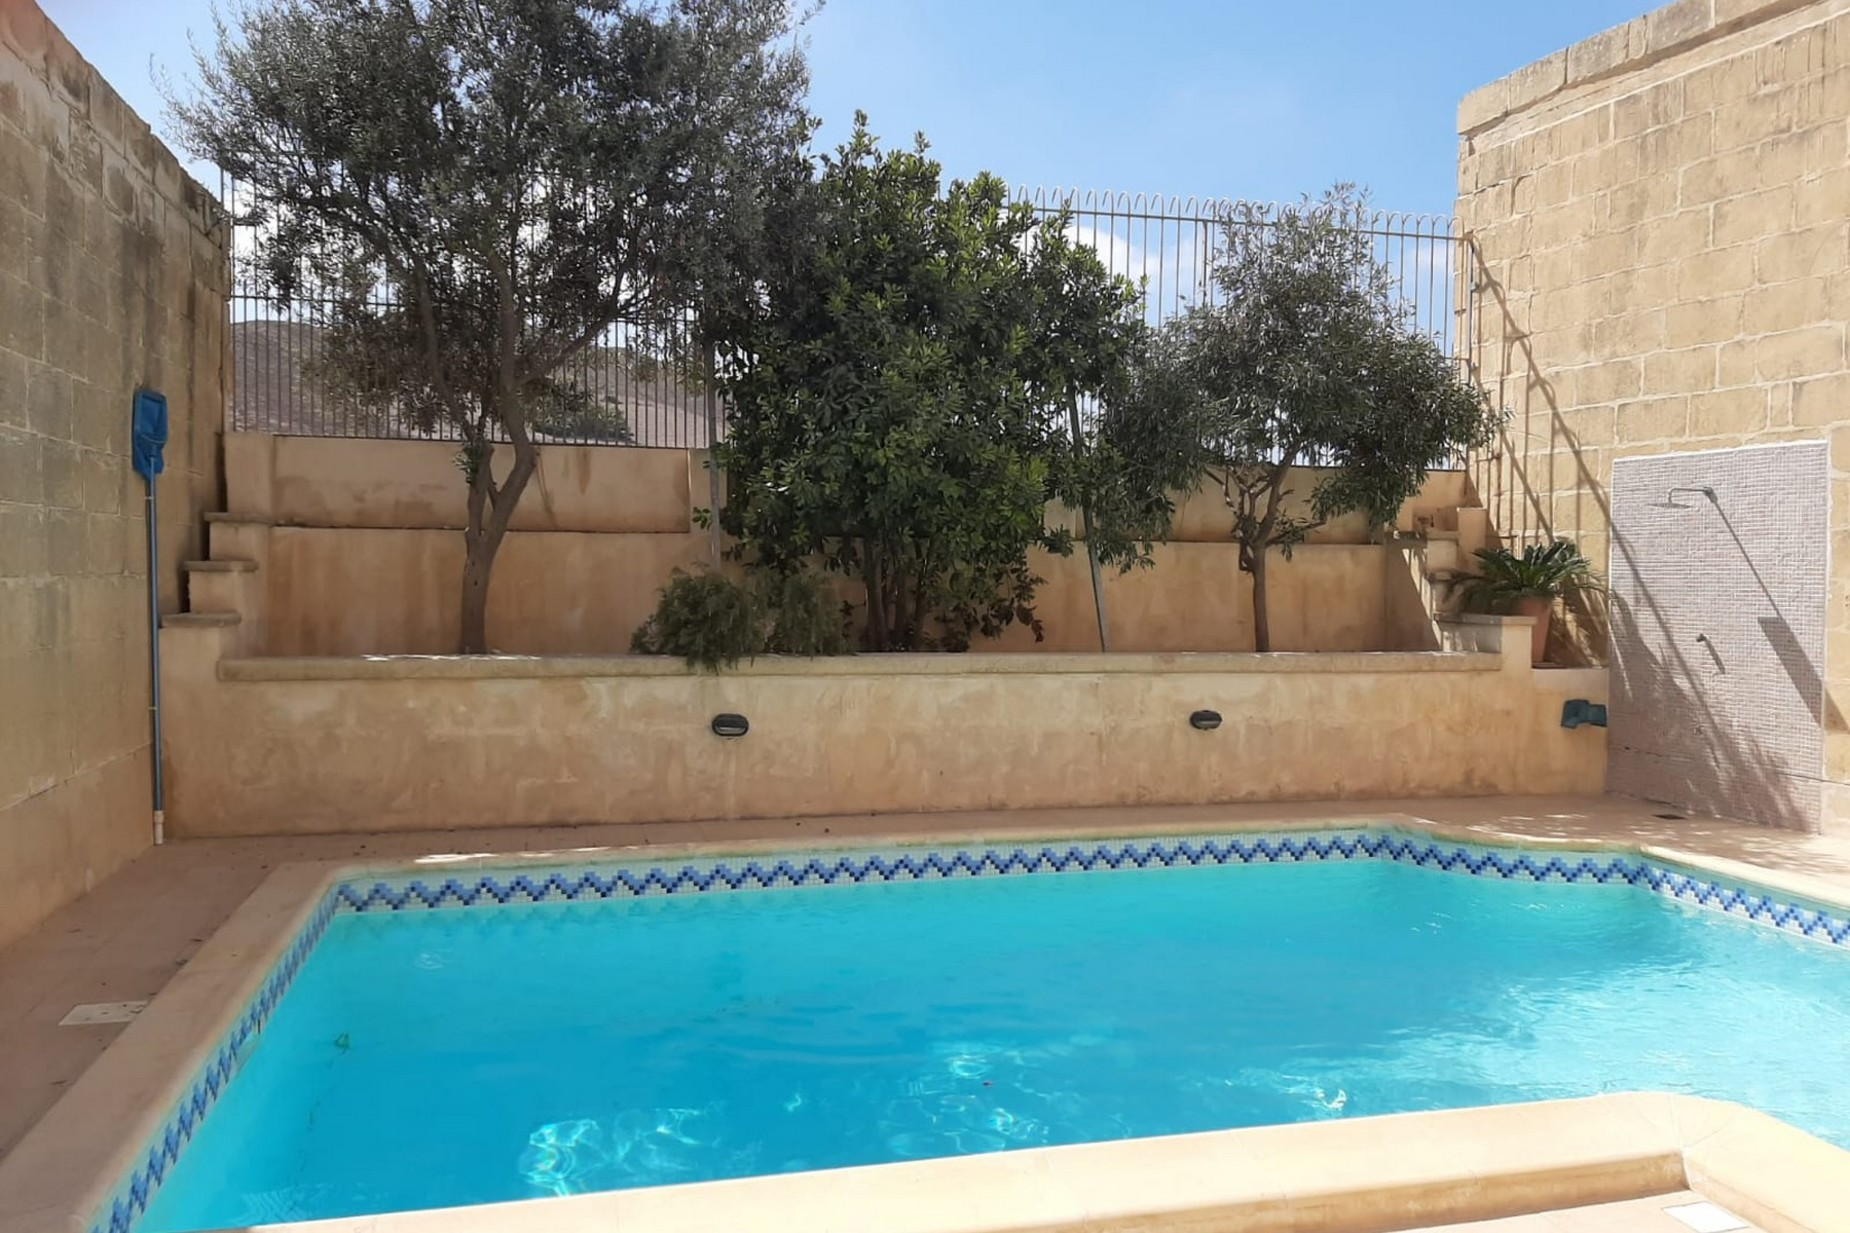 3 bed Apartment For Rent in Gharb, Gharb - thumb 3